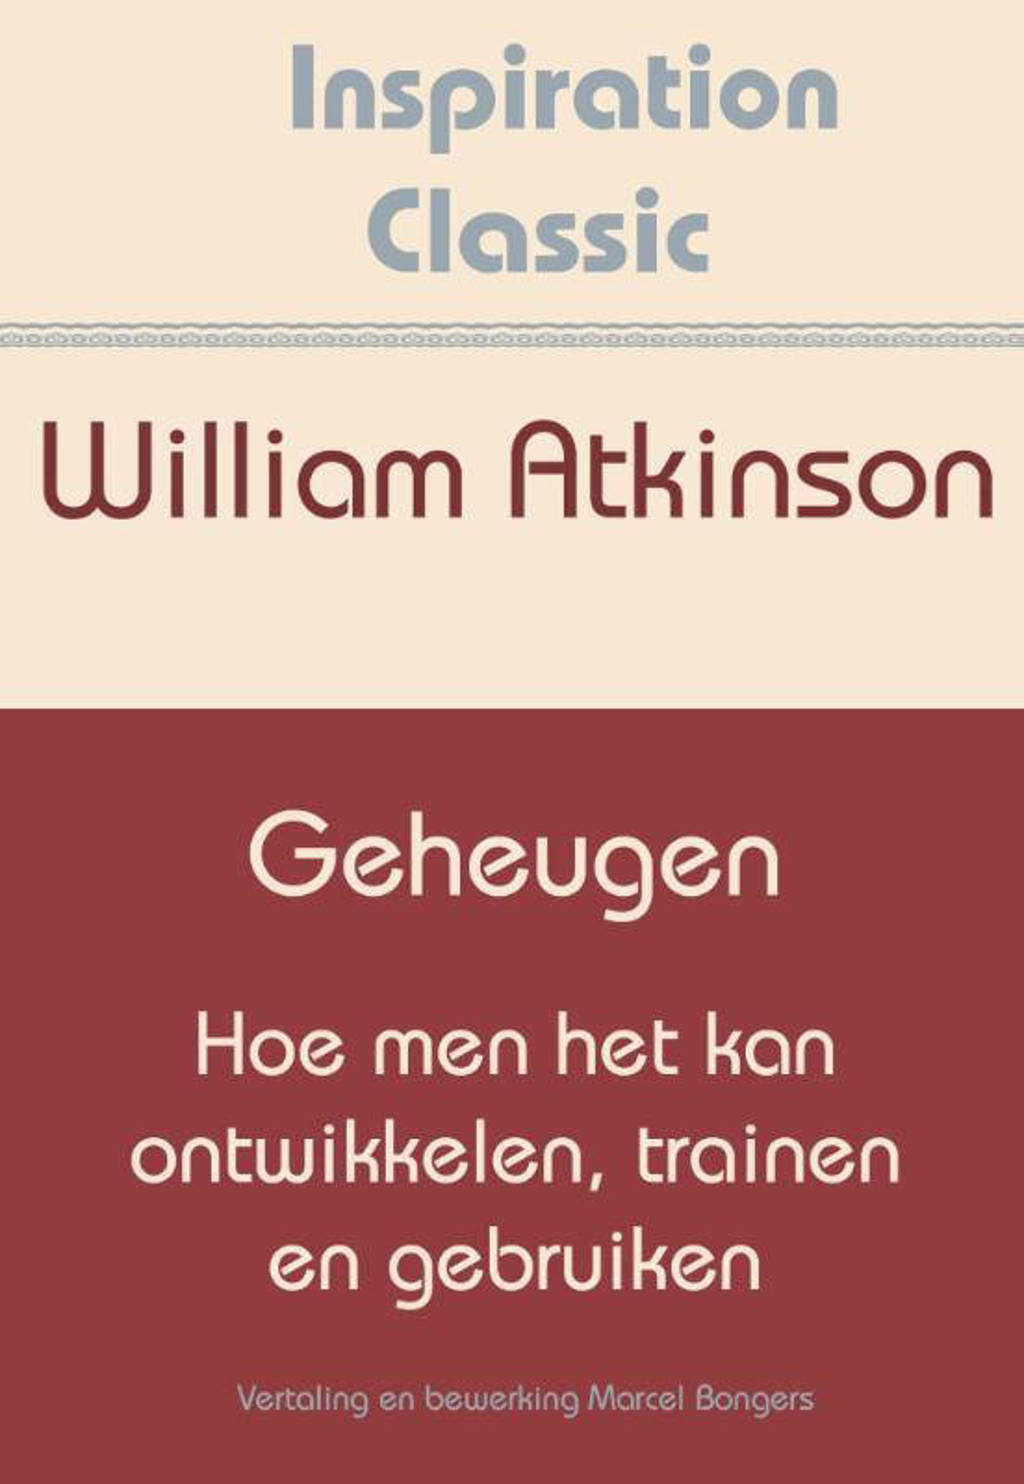 Inspiration Classic: Geheugen - William Atkinson